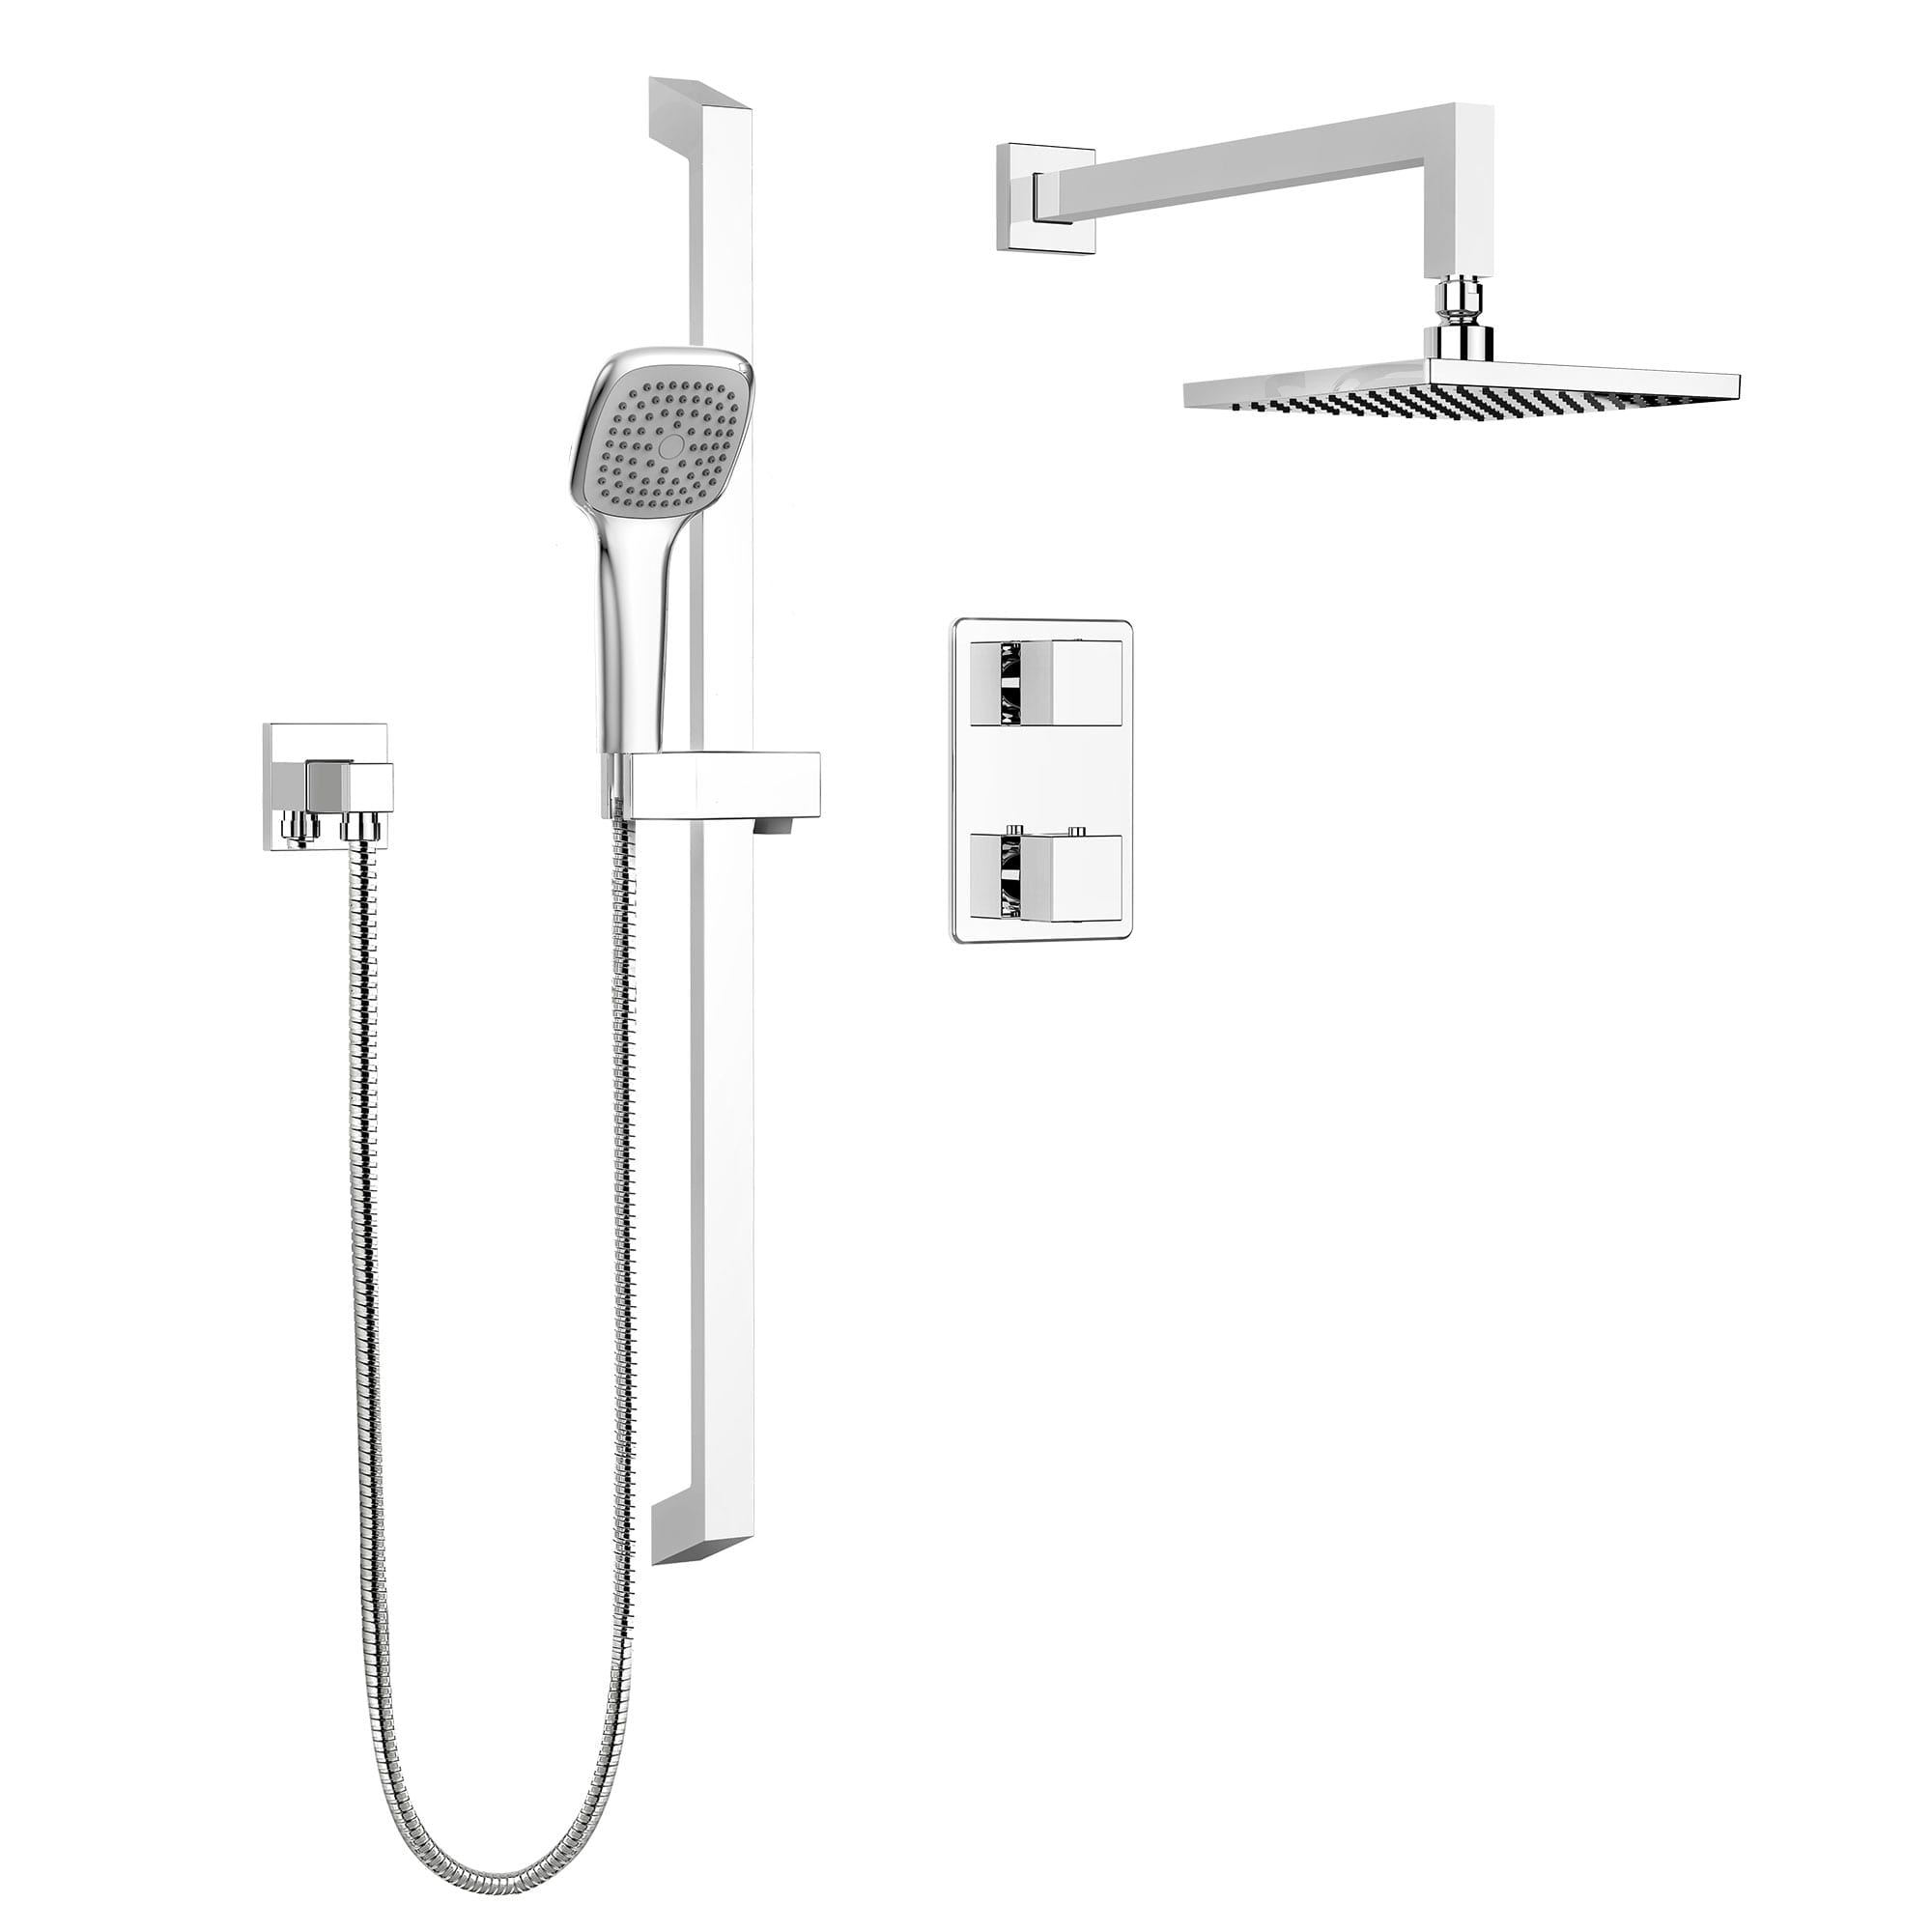 complete shower faucet kits. PCT KIT QUA140TSCP jpg  1 Shower Kits Kit Faucet Complete model for Thermostatic Diverter